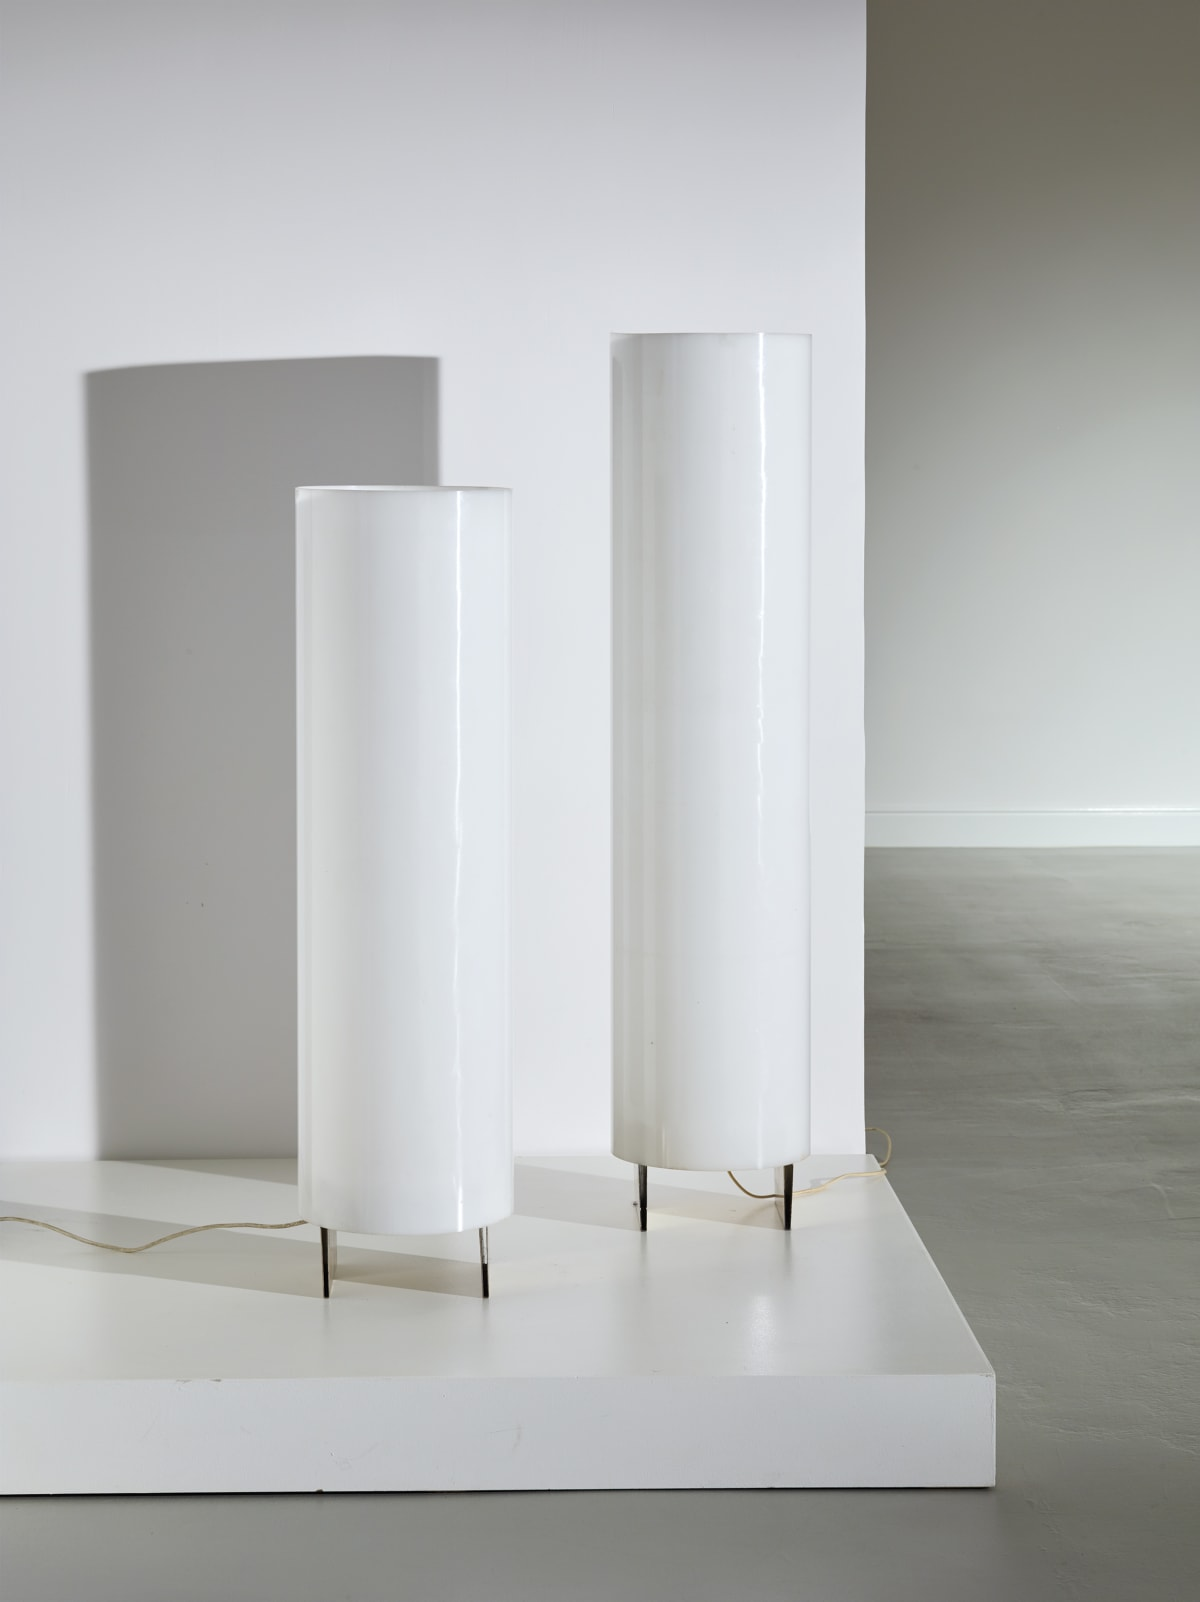 Lino Sabattini Pair of floor lamps 1975 Siver metal and perspex 112 x 30 cm; 134 x 30 cm Prototype for the artist's home